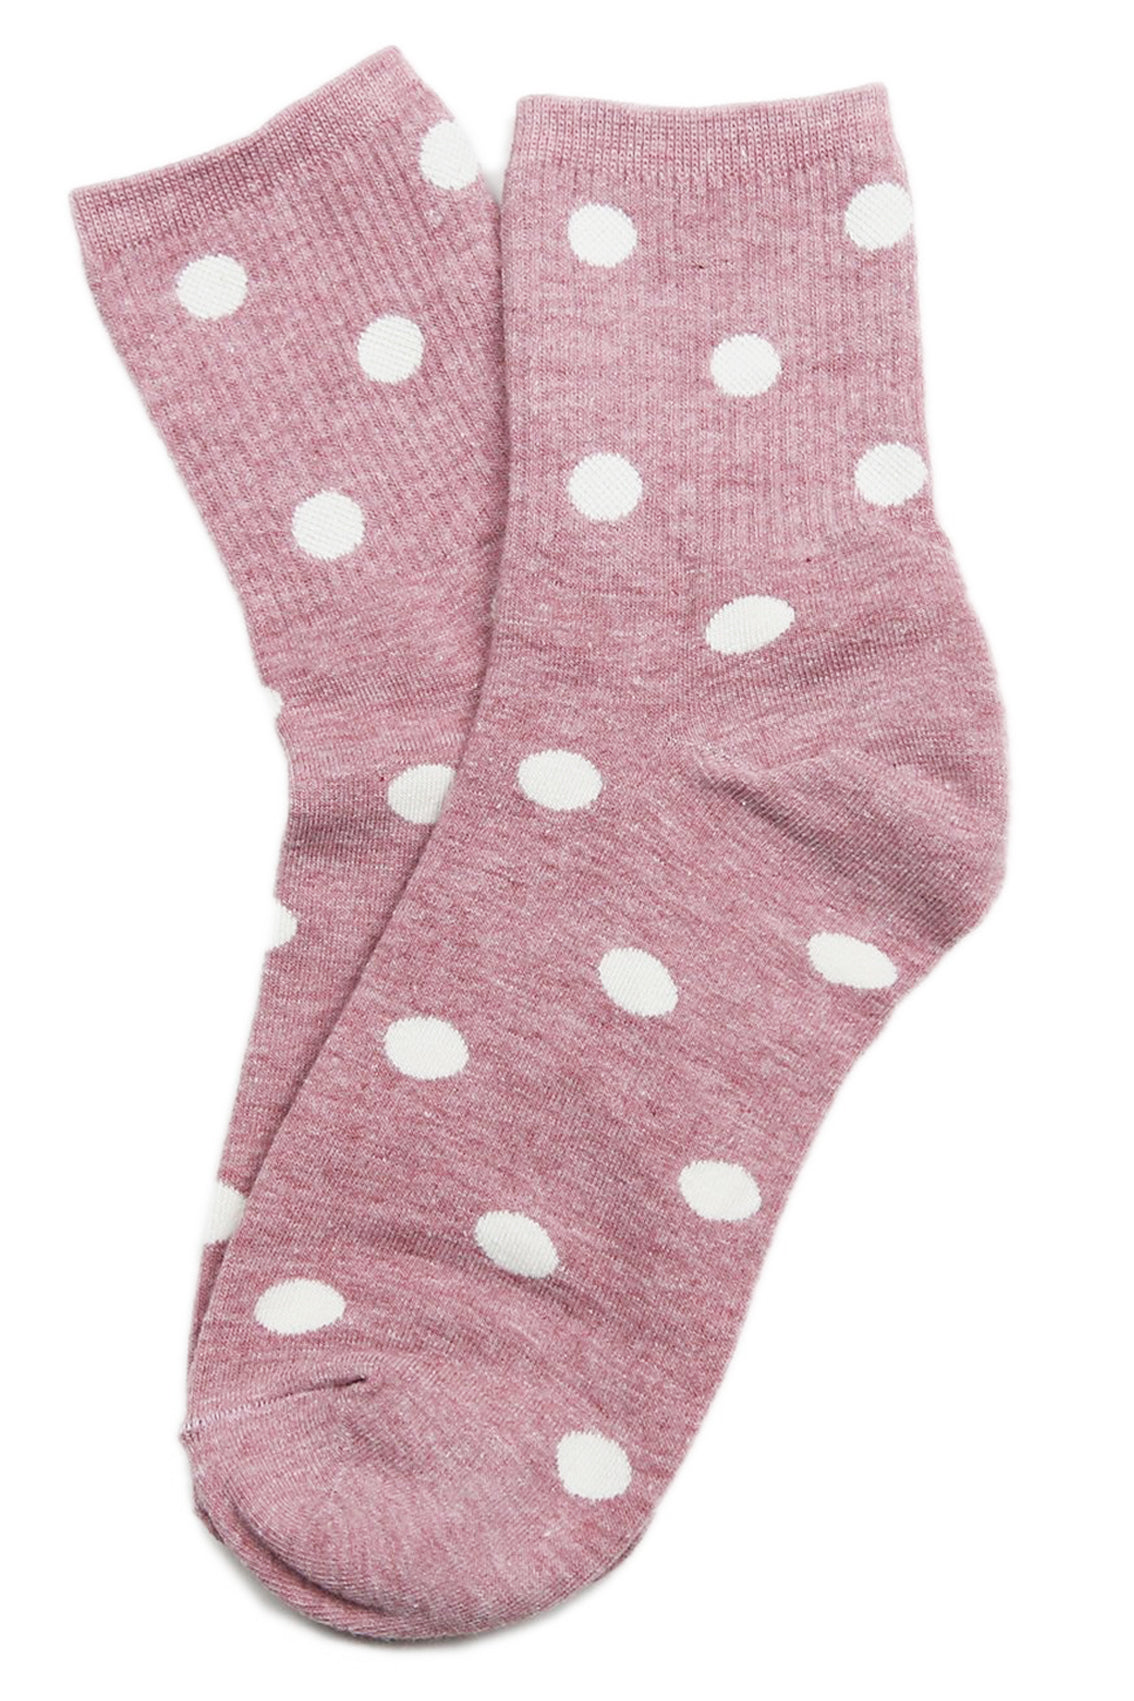 Pink Perfection Socks